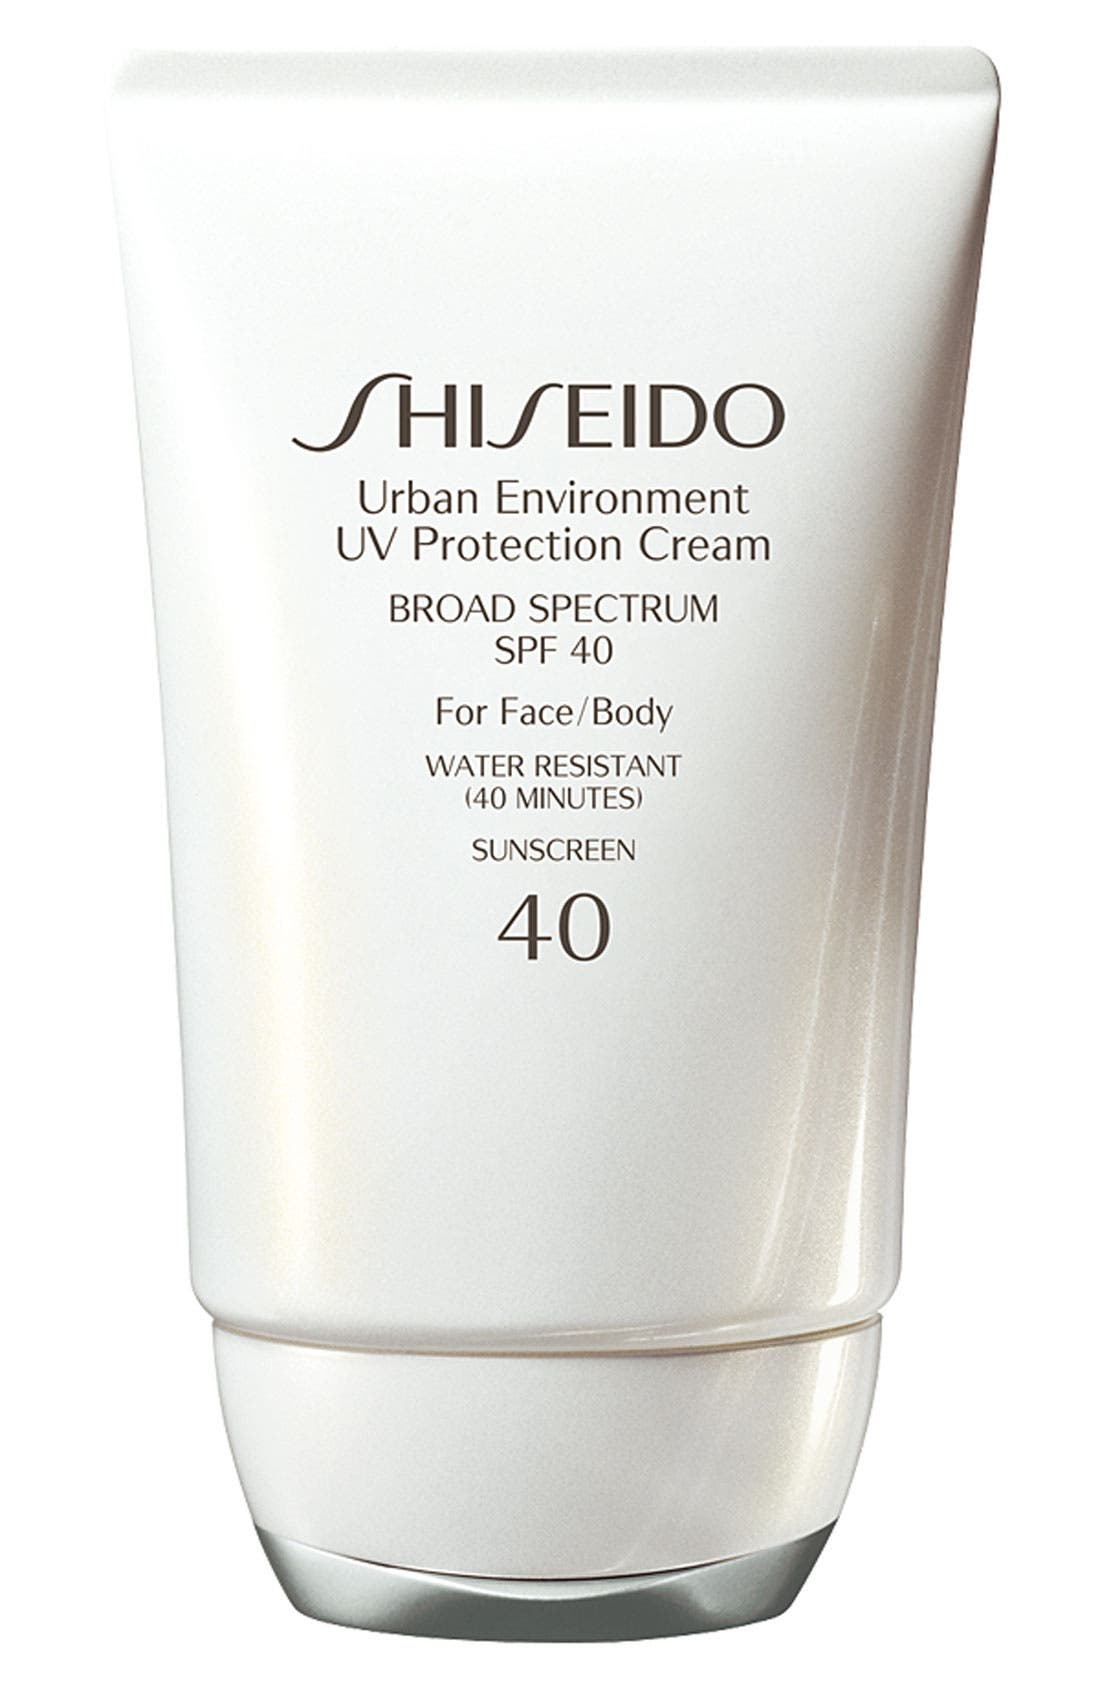 Shiseido 'Urban Environment' UV Protection Cream SPF 40